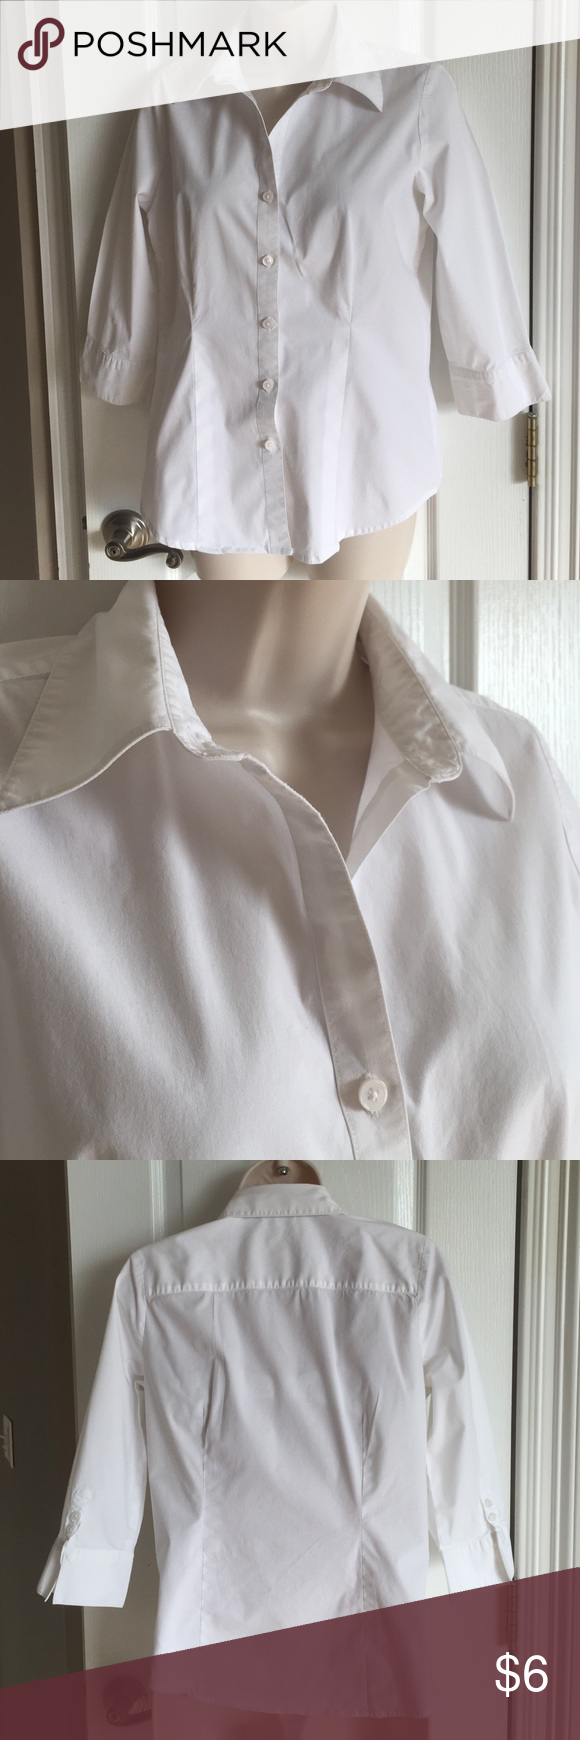 Kim Rogers S 3/4 sleeves, EUC from a non-smoking home Kim Rogers Tops Button Down Shirts